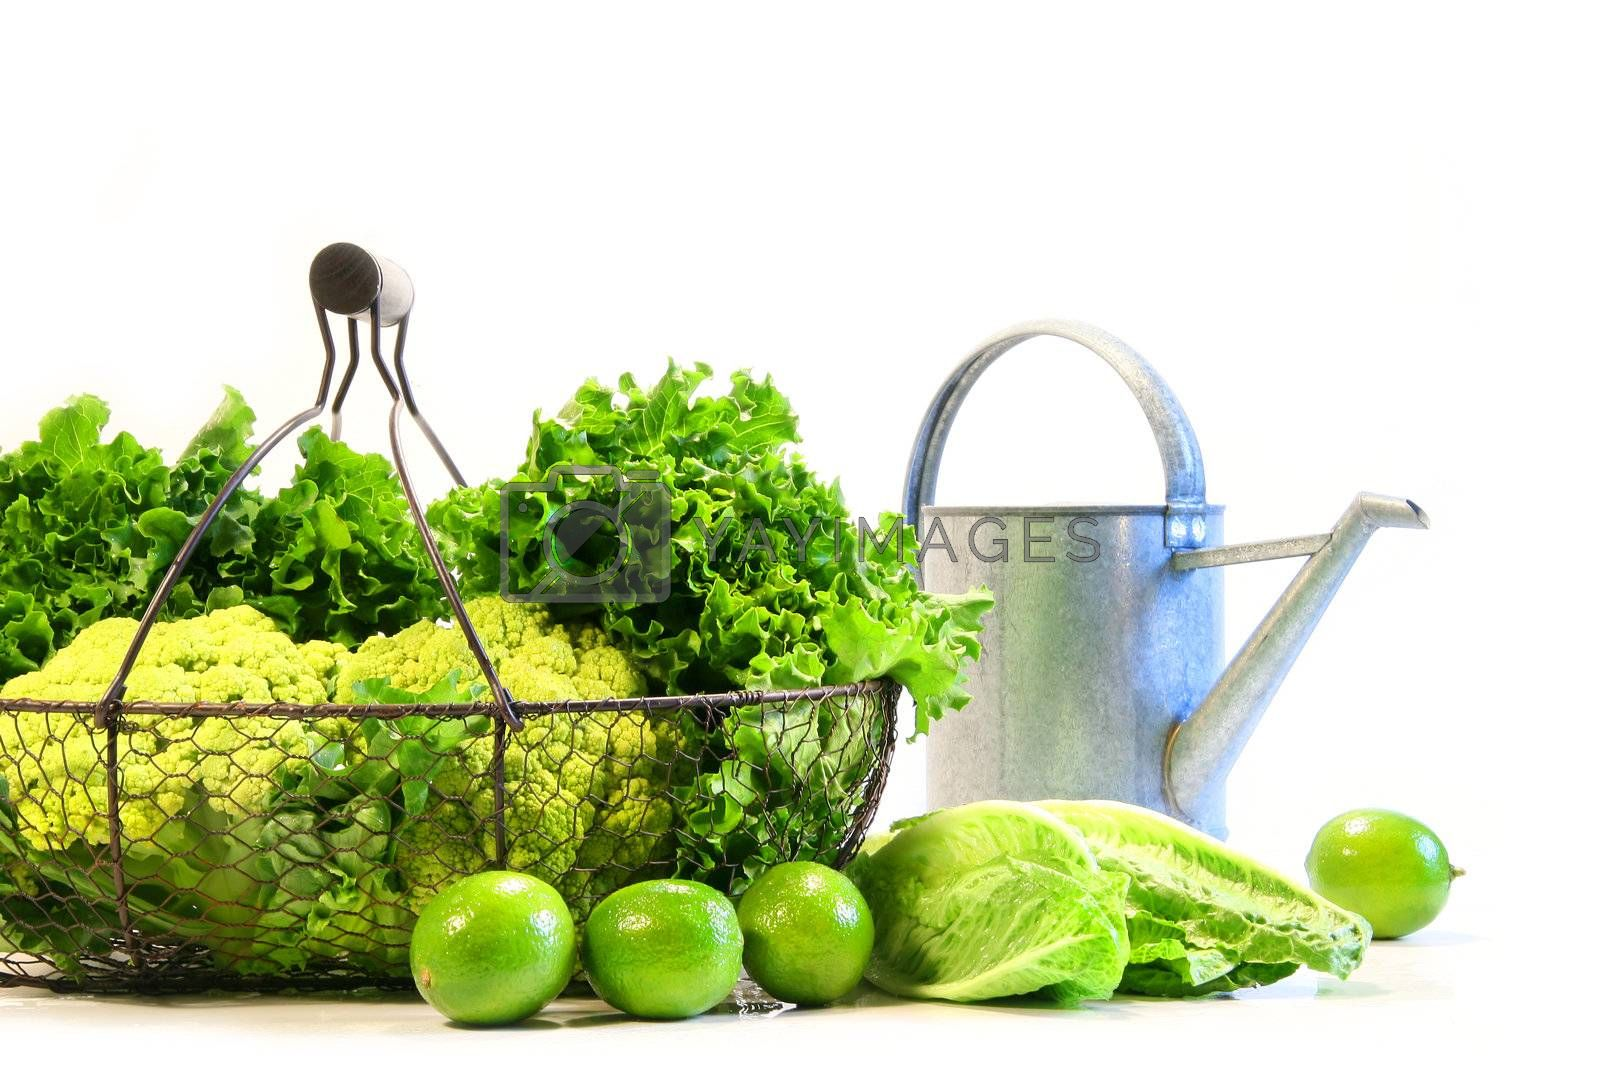 Vegetables and limes with watering can on white background